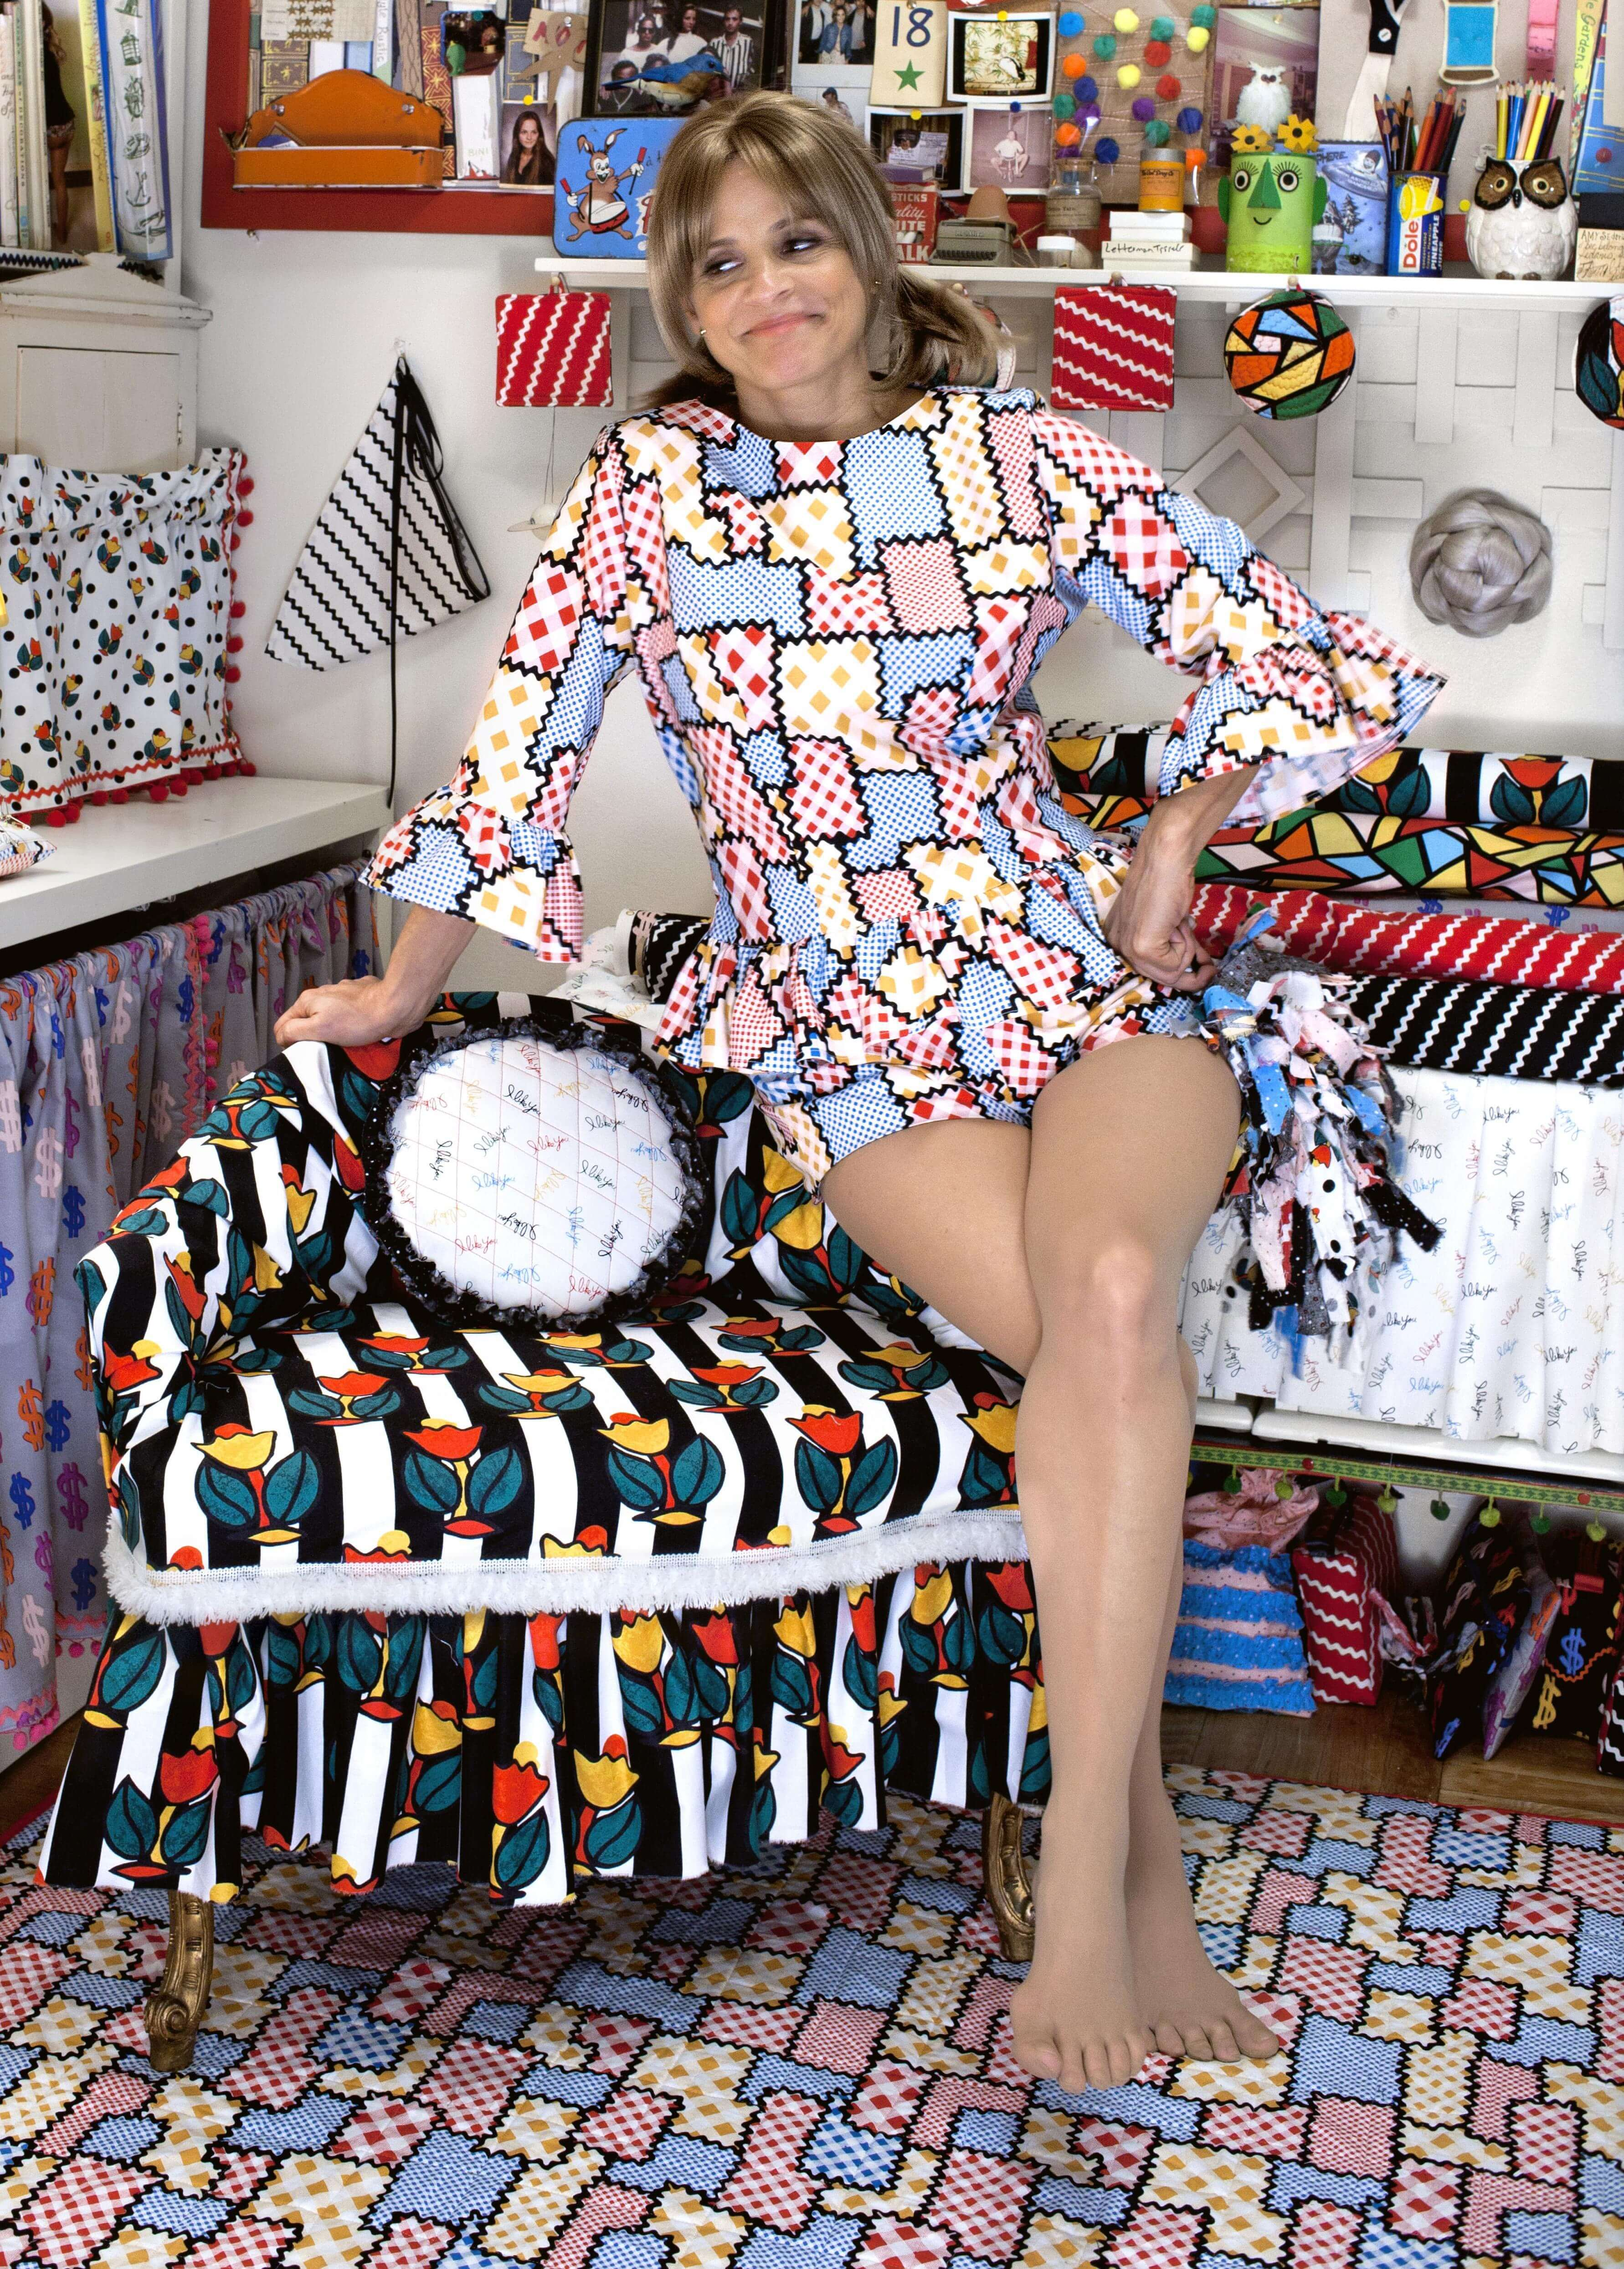 Amy Sedaris Naked 49 hot pictures of amy sedaris which will keep you up at nights